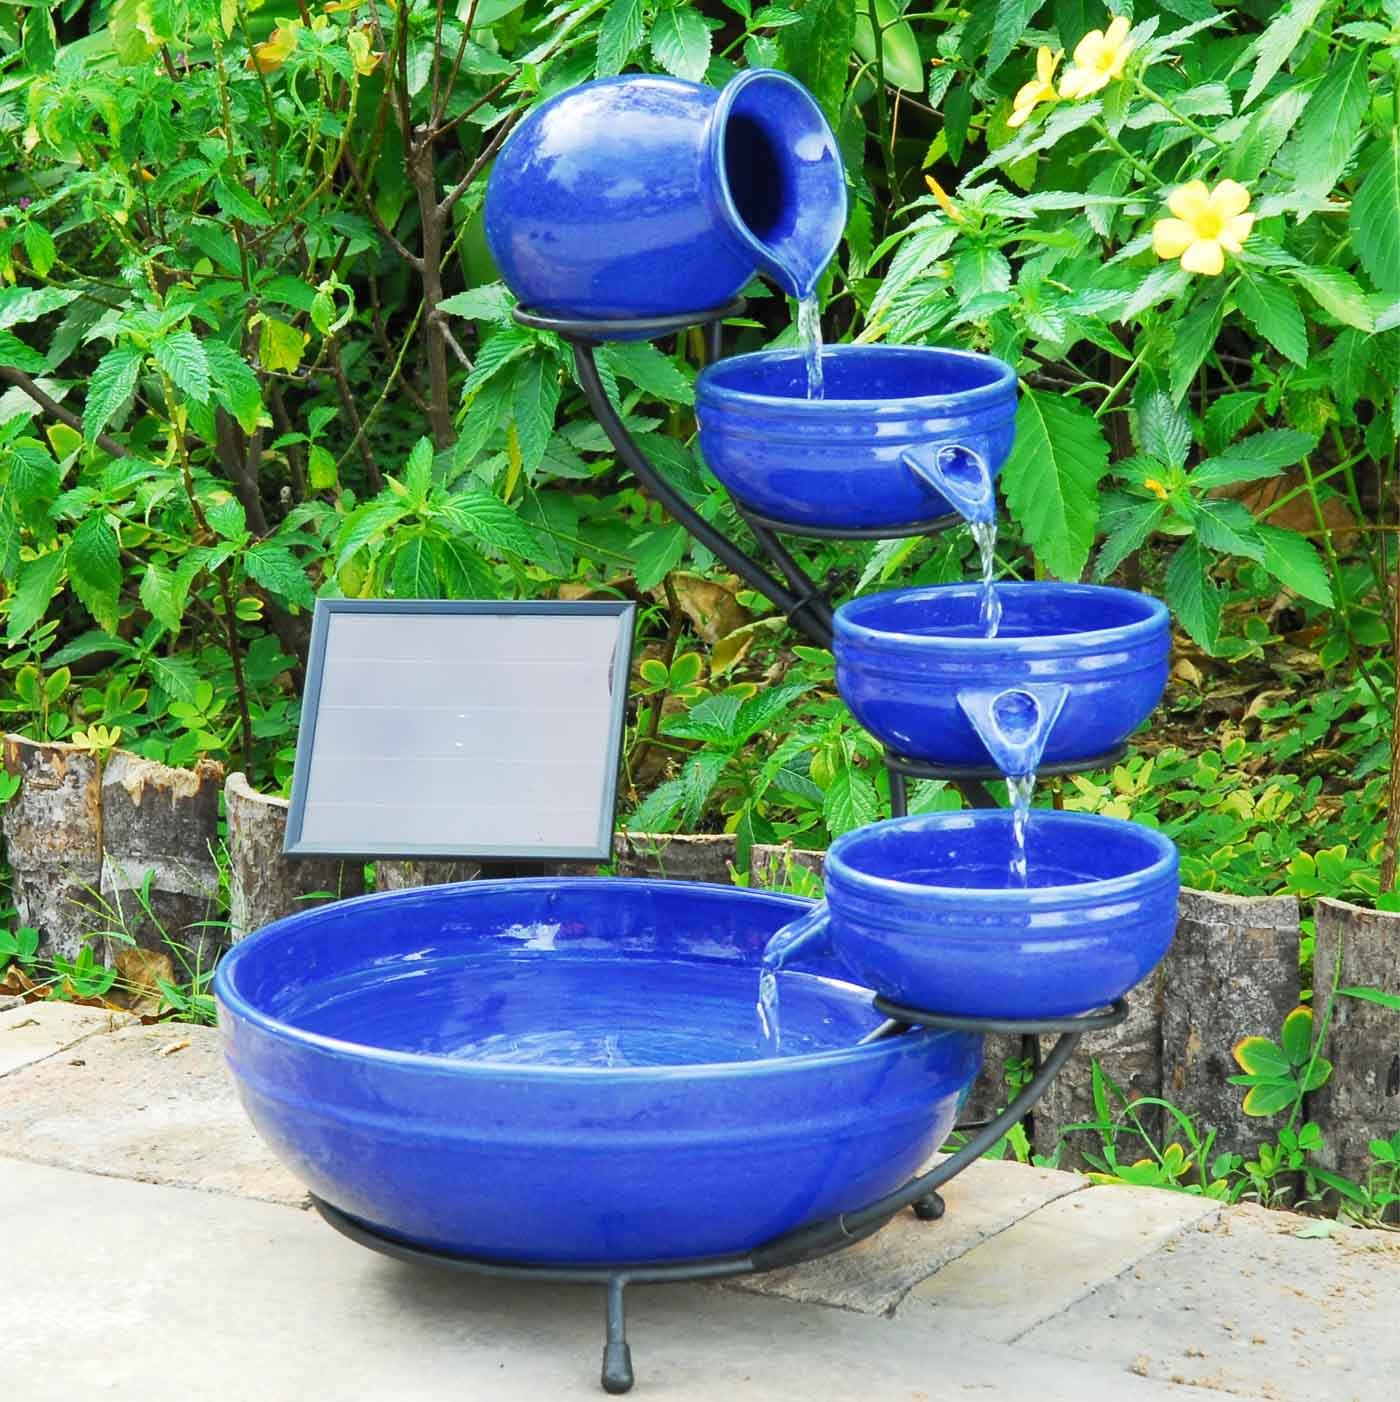 Sunny fountains P 004 C Solar Cascade Fountain Ceramic Blue Home 20043R01